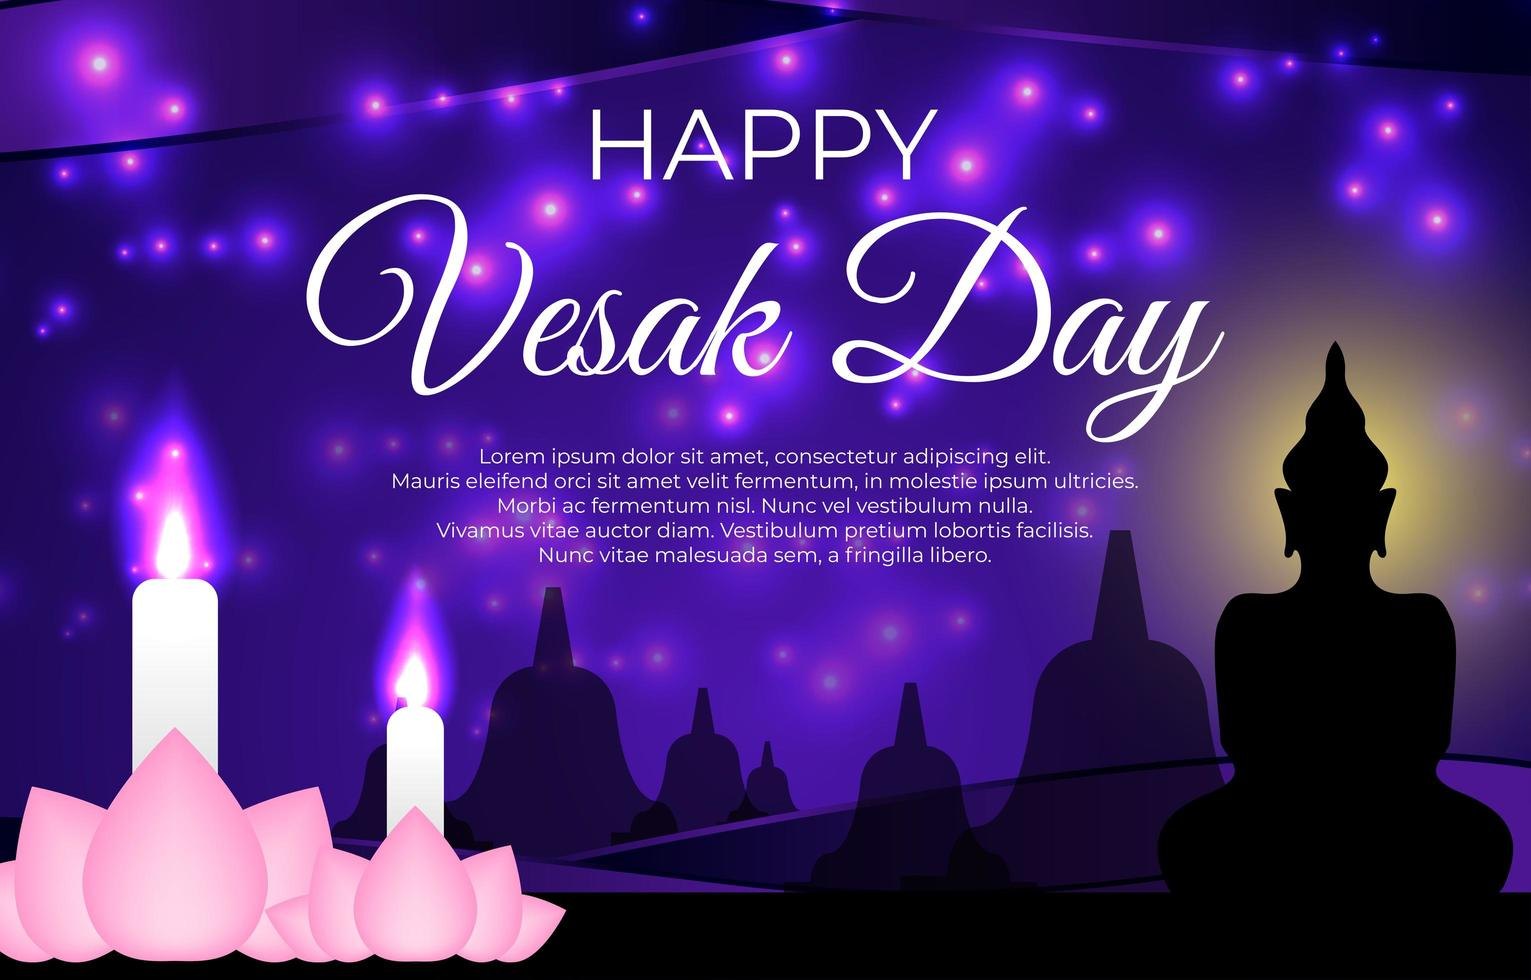 Vesak Day Greetings With Lotus and Candle vector